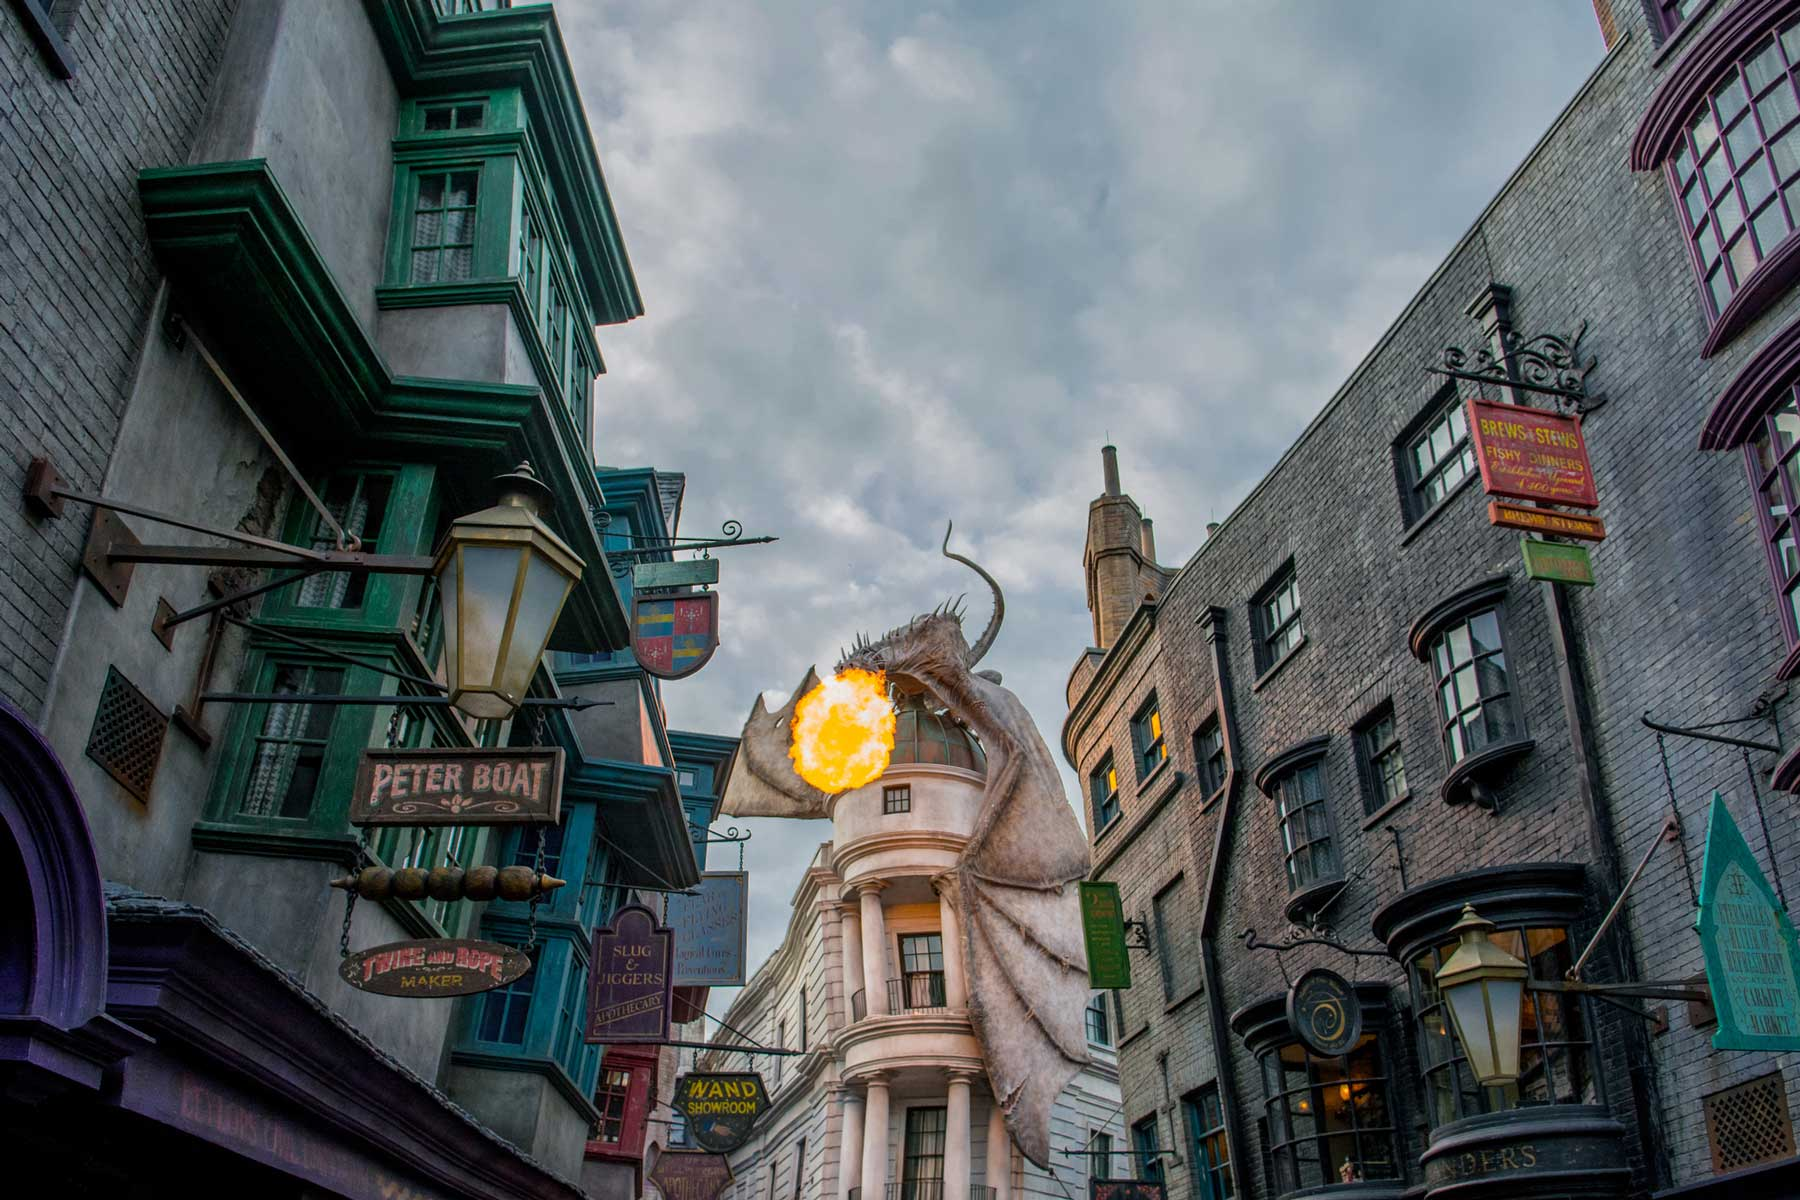 Dragon breathing fire at The Wizarding World of Harry Potter - Diagon Alley in Universal Studios Florida.